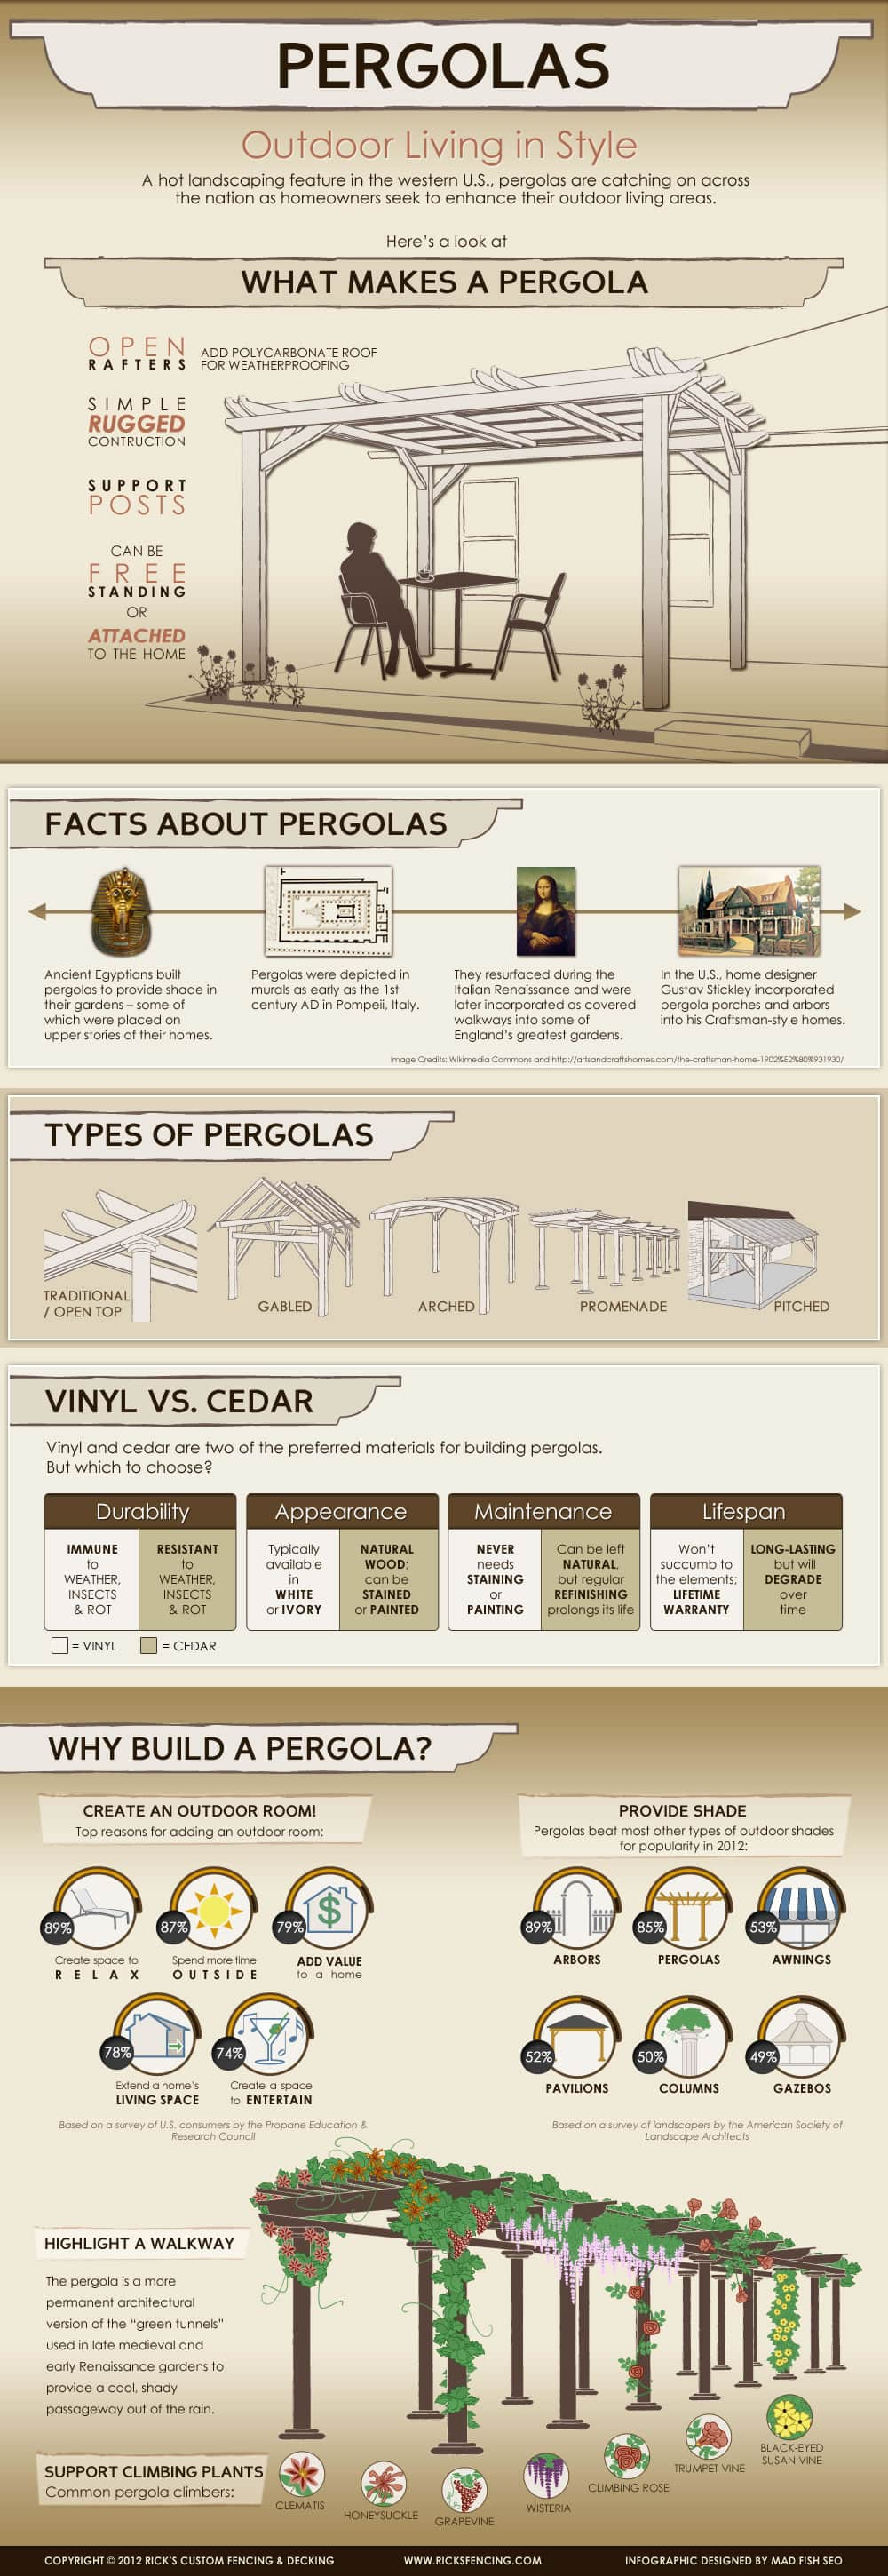 Pergolas - Outdoor Living in Style (Infographic)